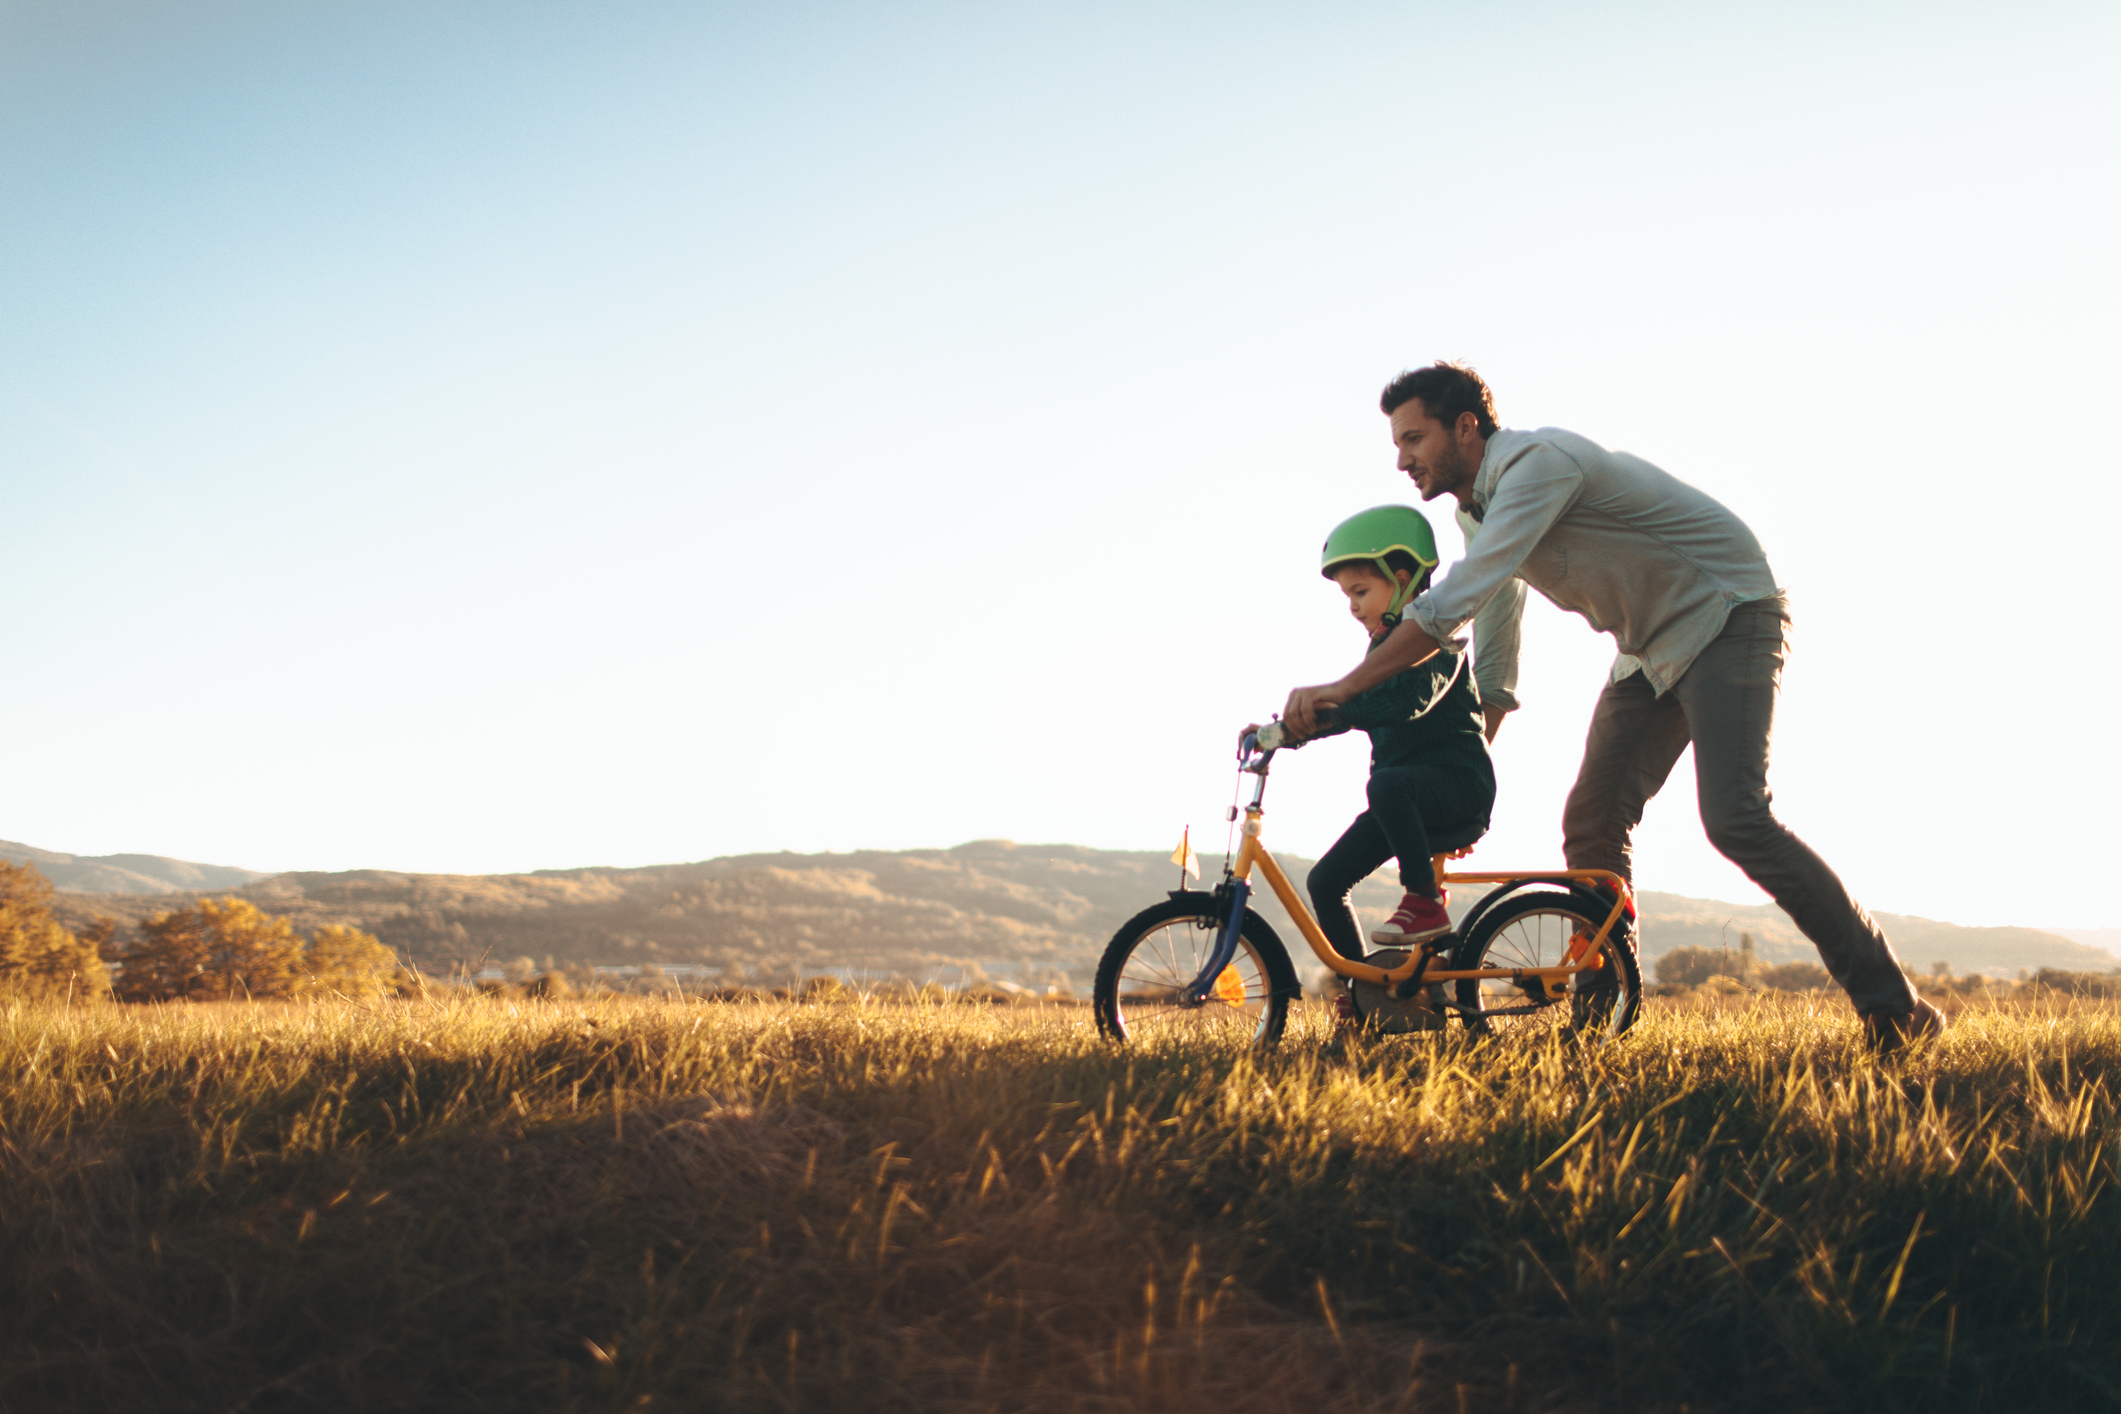 father-and-son-on-a-bicycle-lanejpg